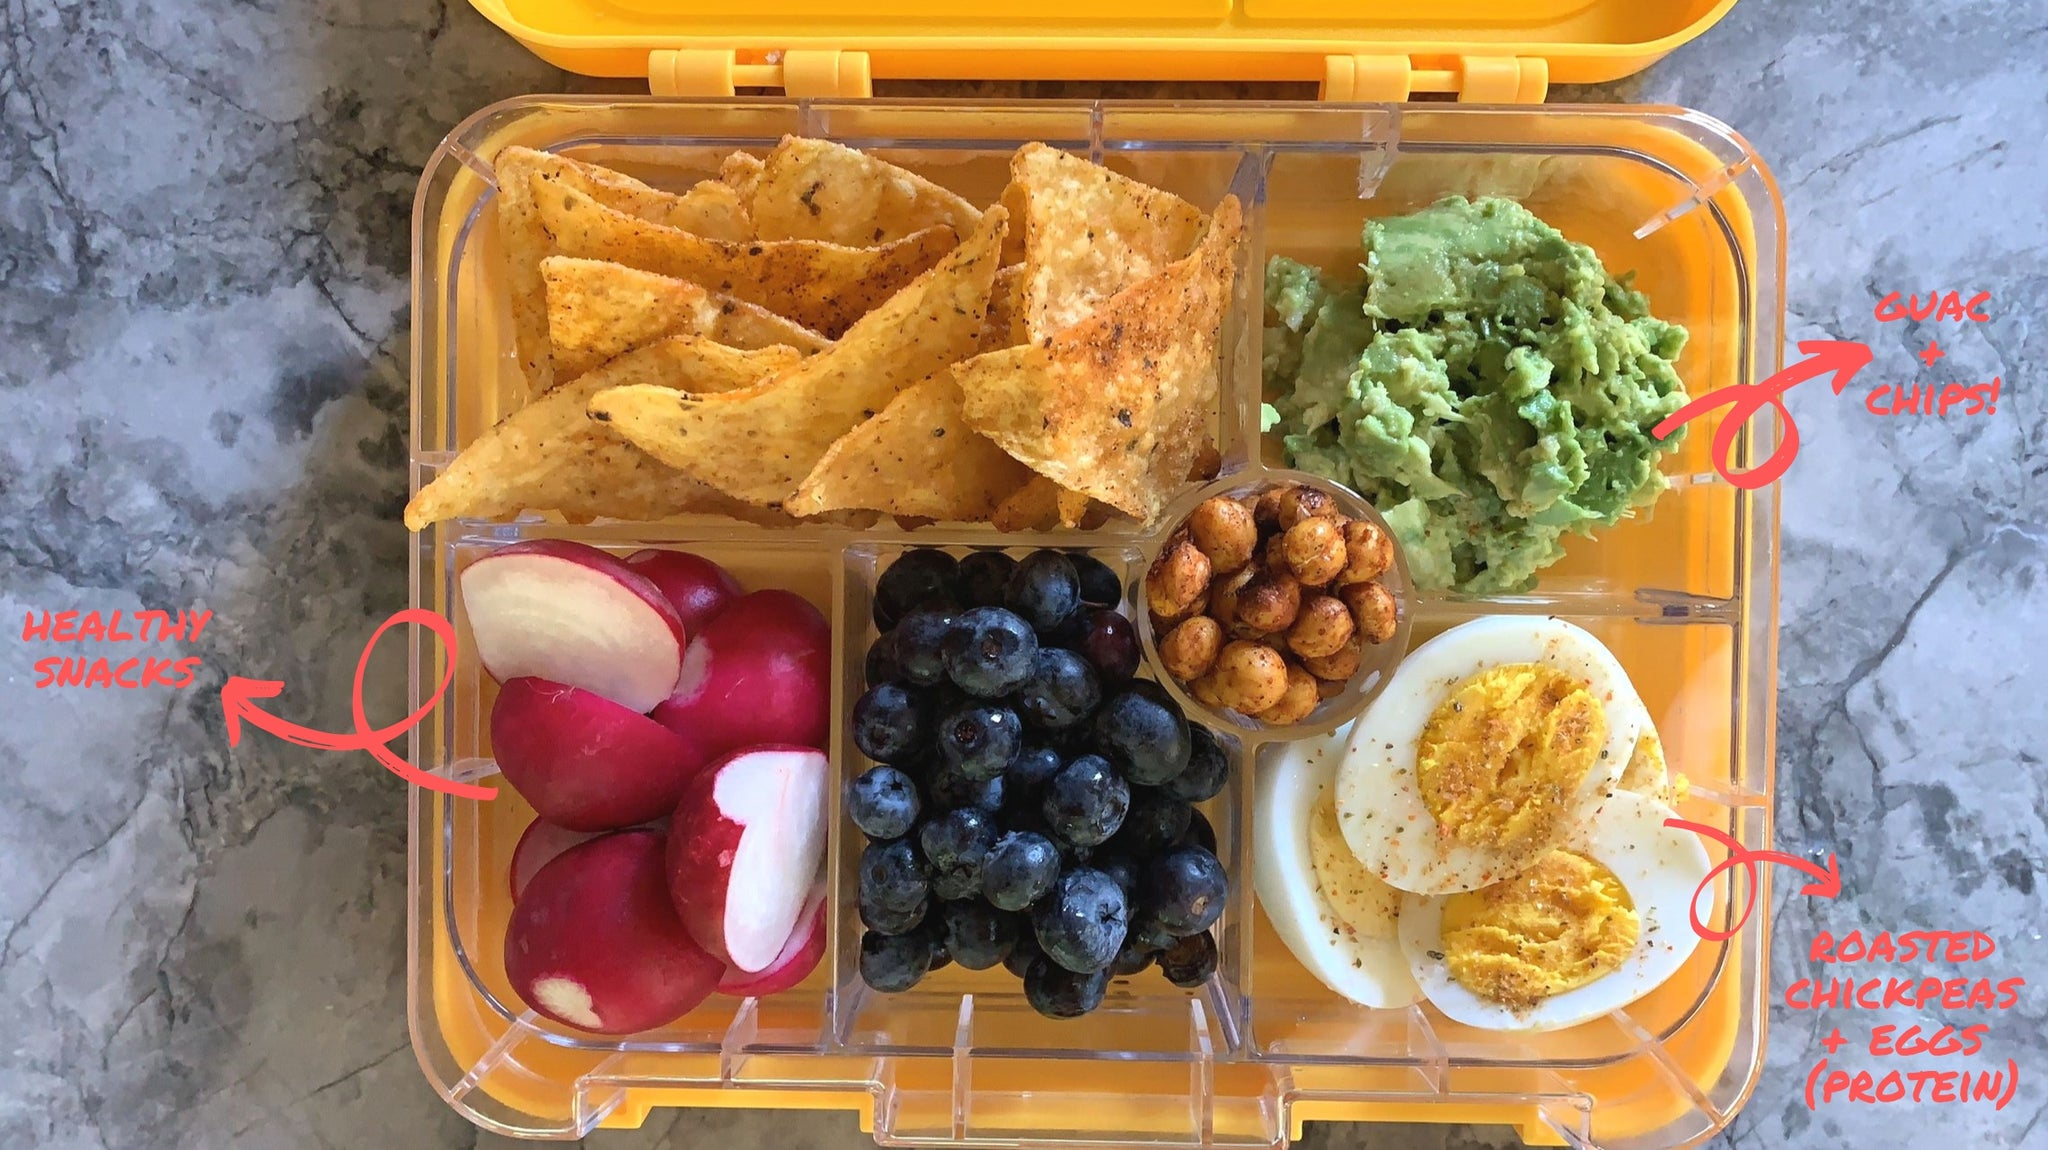 Guacamole and chips bento box idea from Legacy Greens grocery store downtown Kitchener